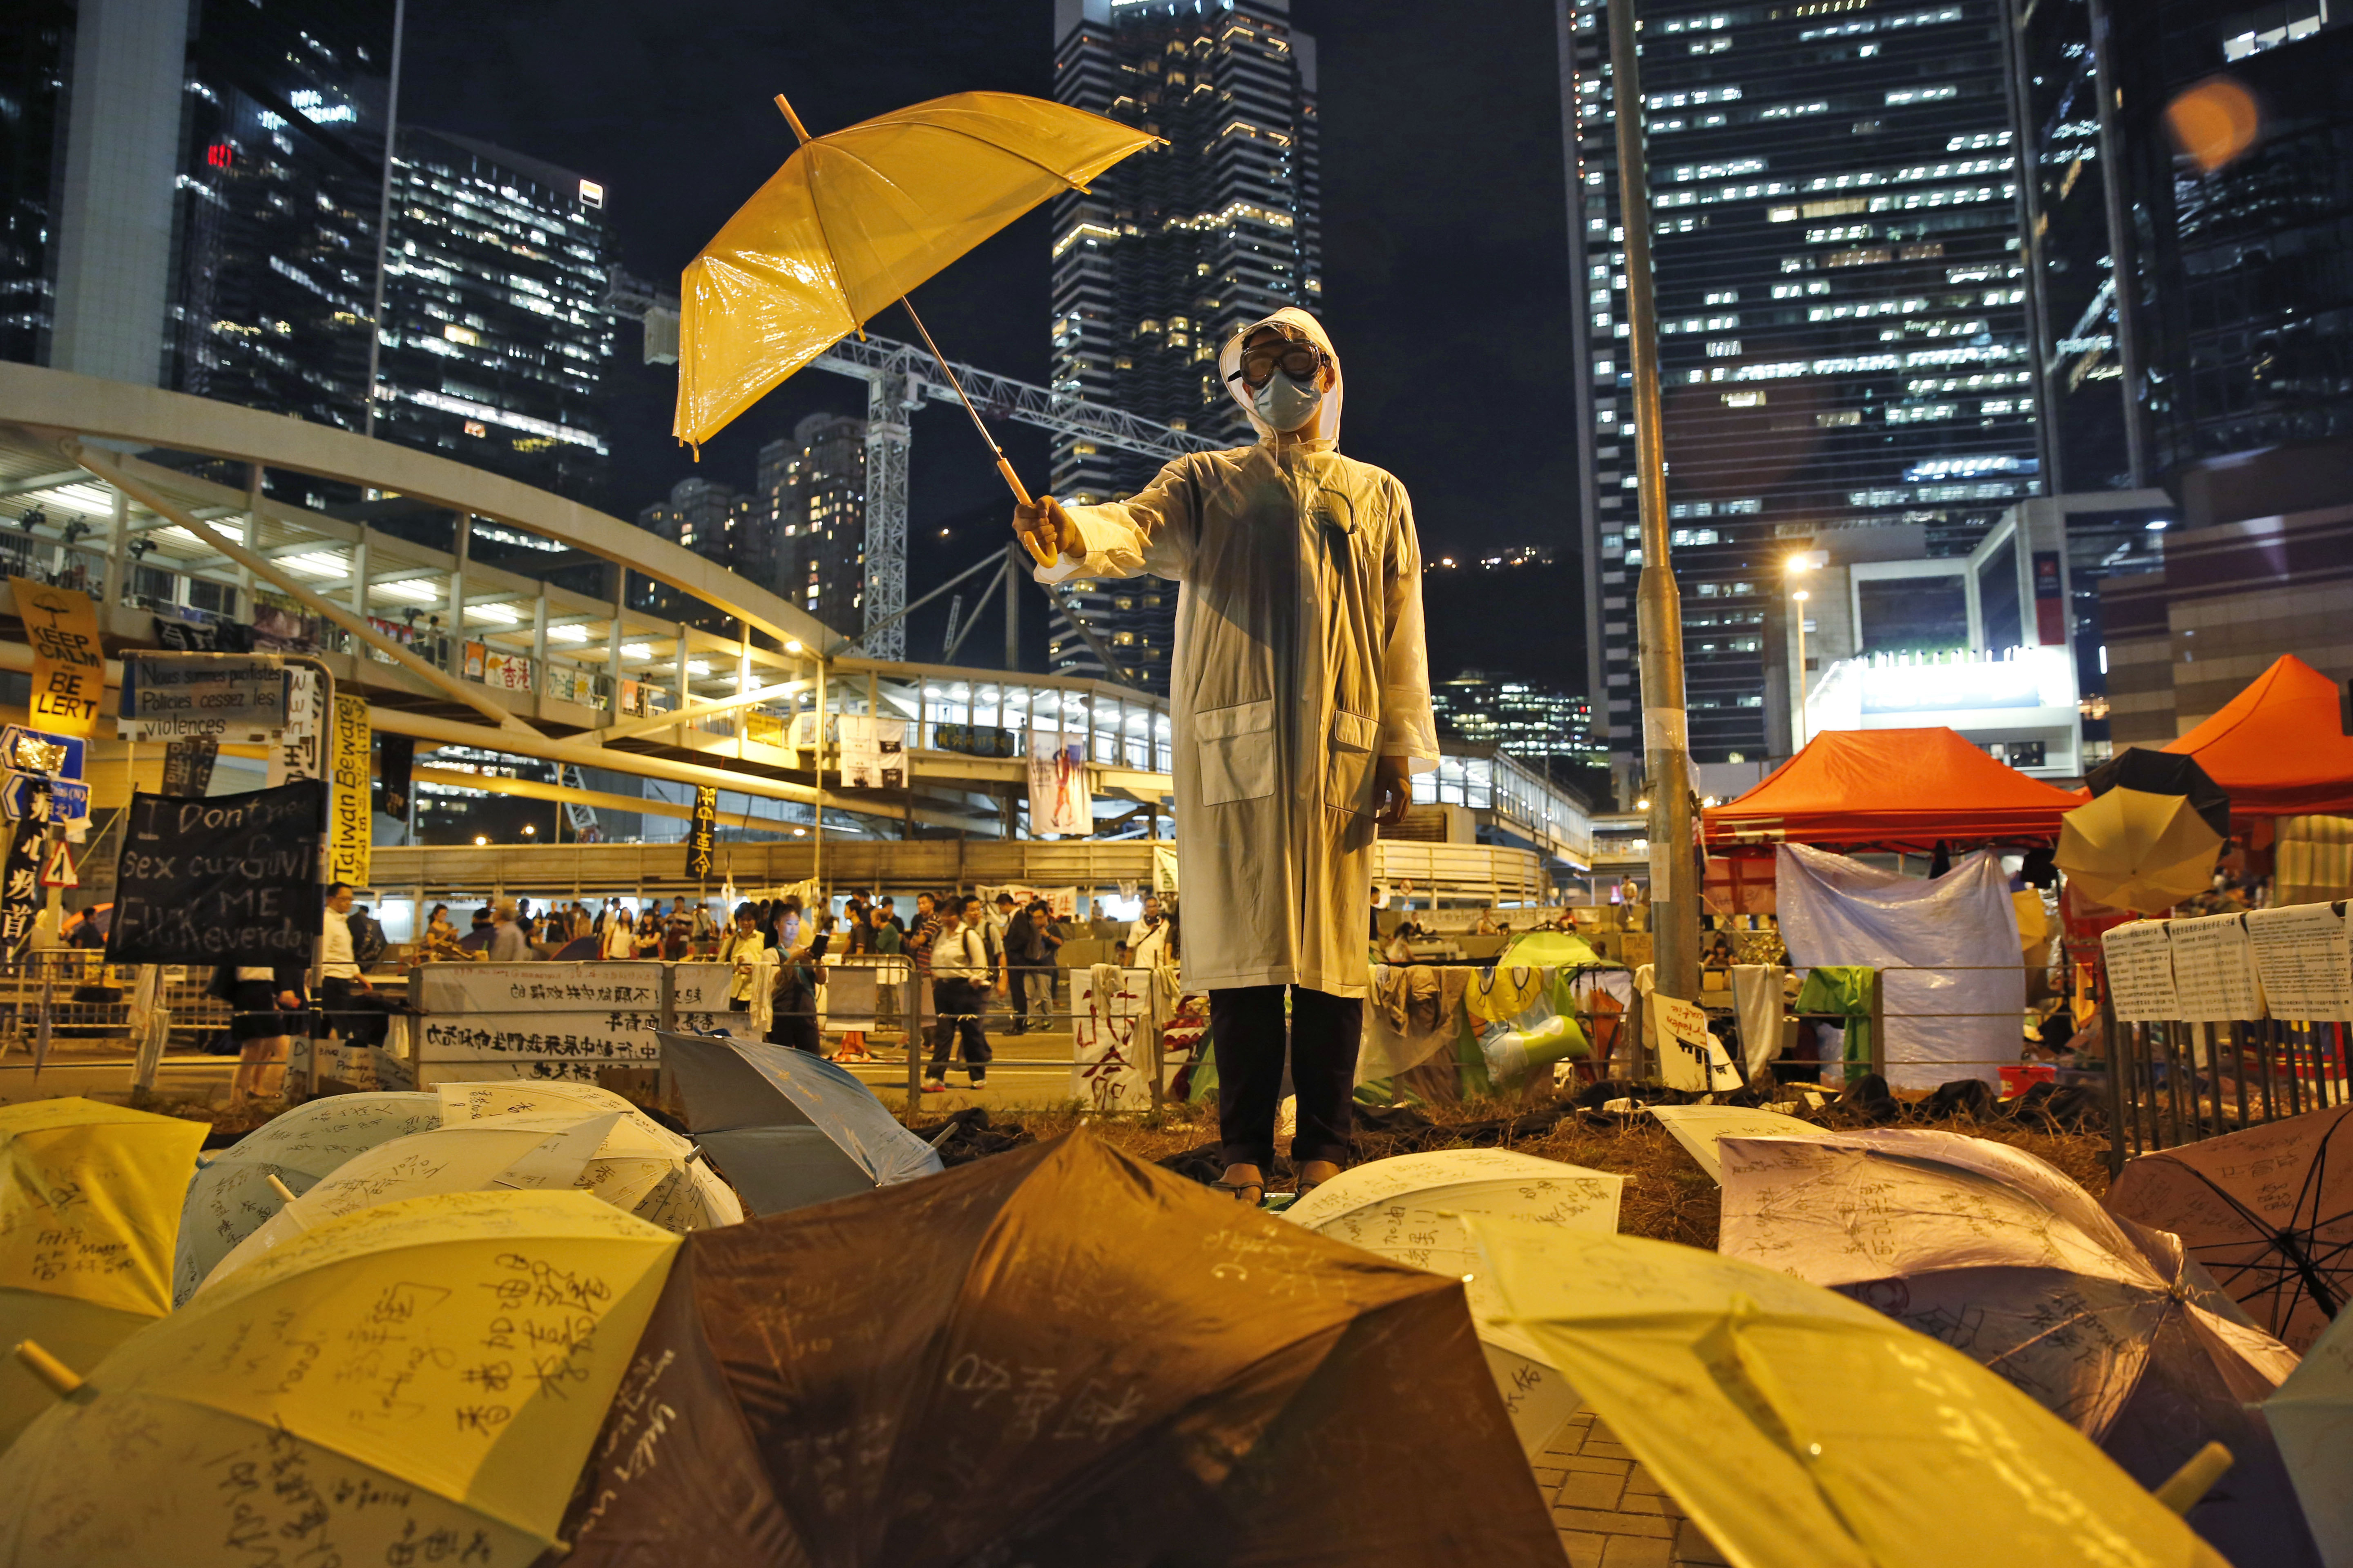 A protester holds an umbrella on a main road in the occupied areas outside government headquarters in Hong Kong's Admiralty on Oct. 9, 2014.